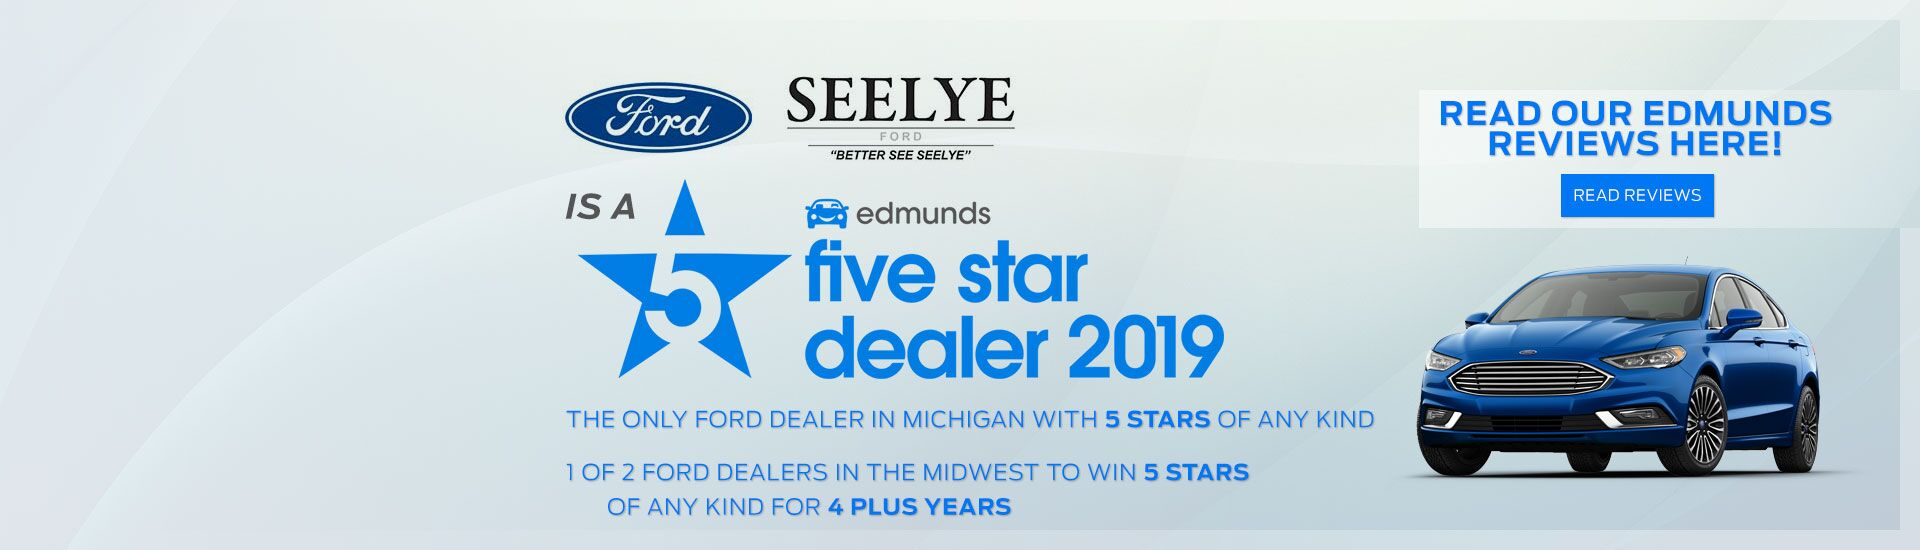 Edmunds 5 Star Dealer